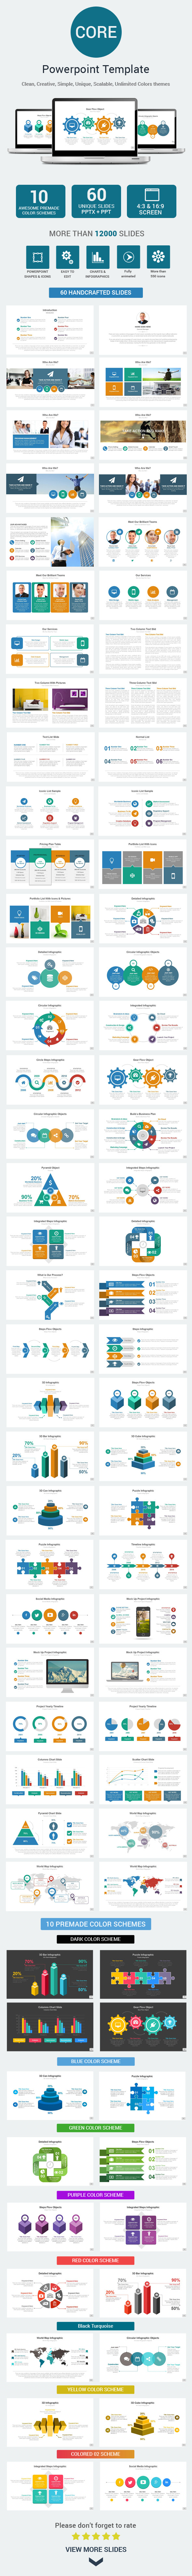 GraphicRiver Core PowerPoint Presentation Template 10204913